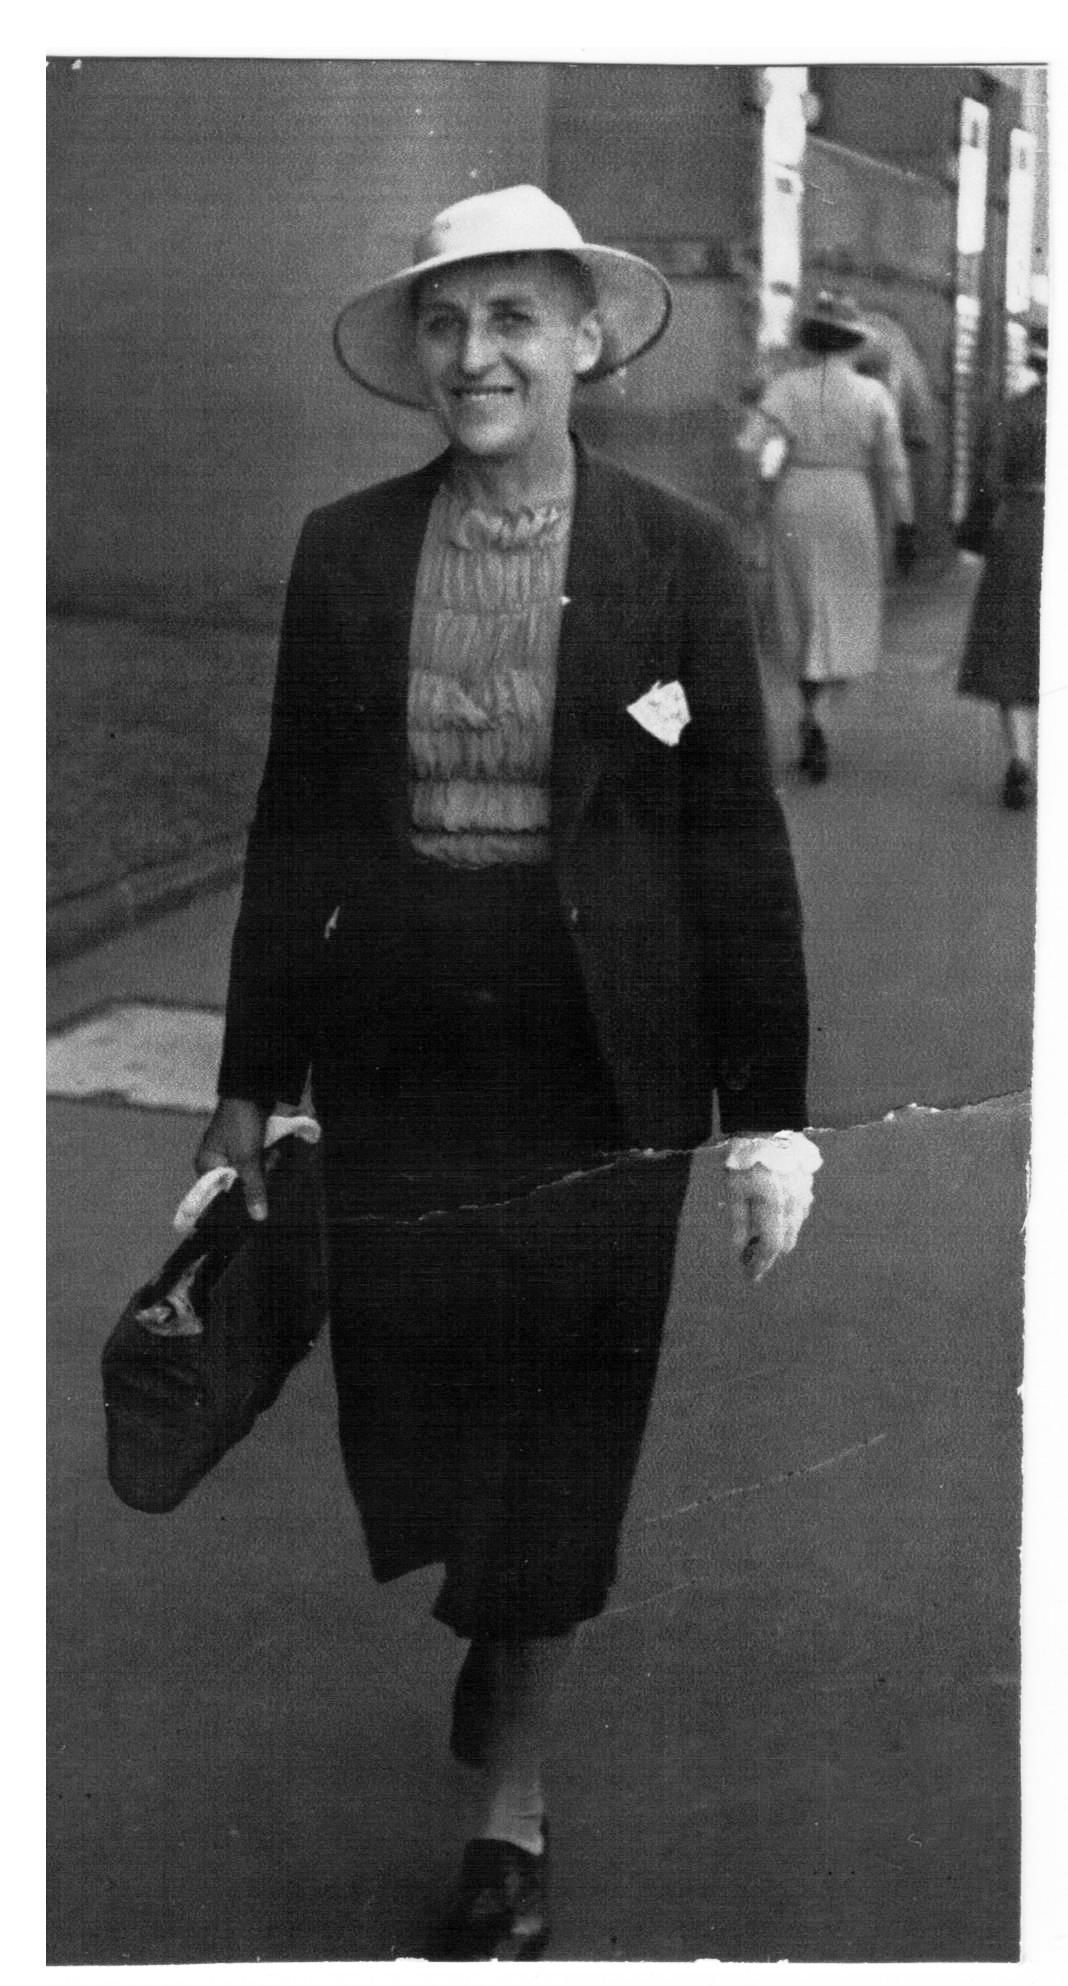 Clementina Hay Marshall in suit in Sydney about 1930